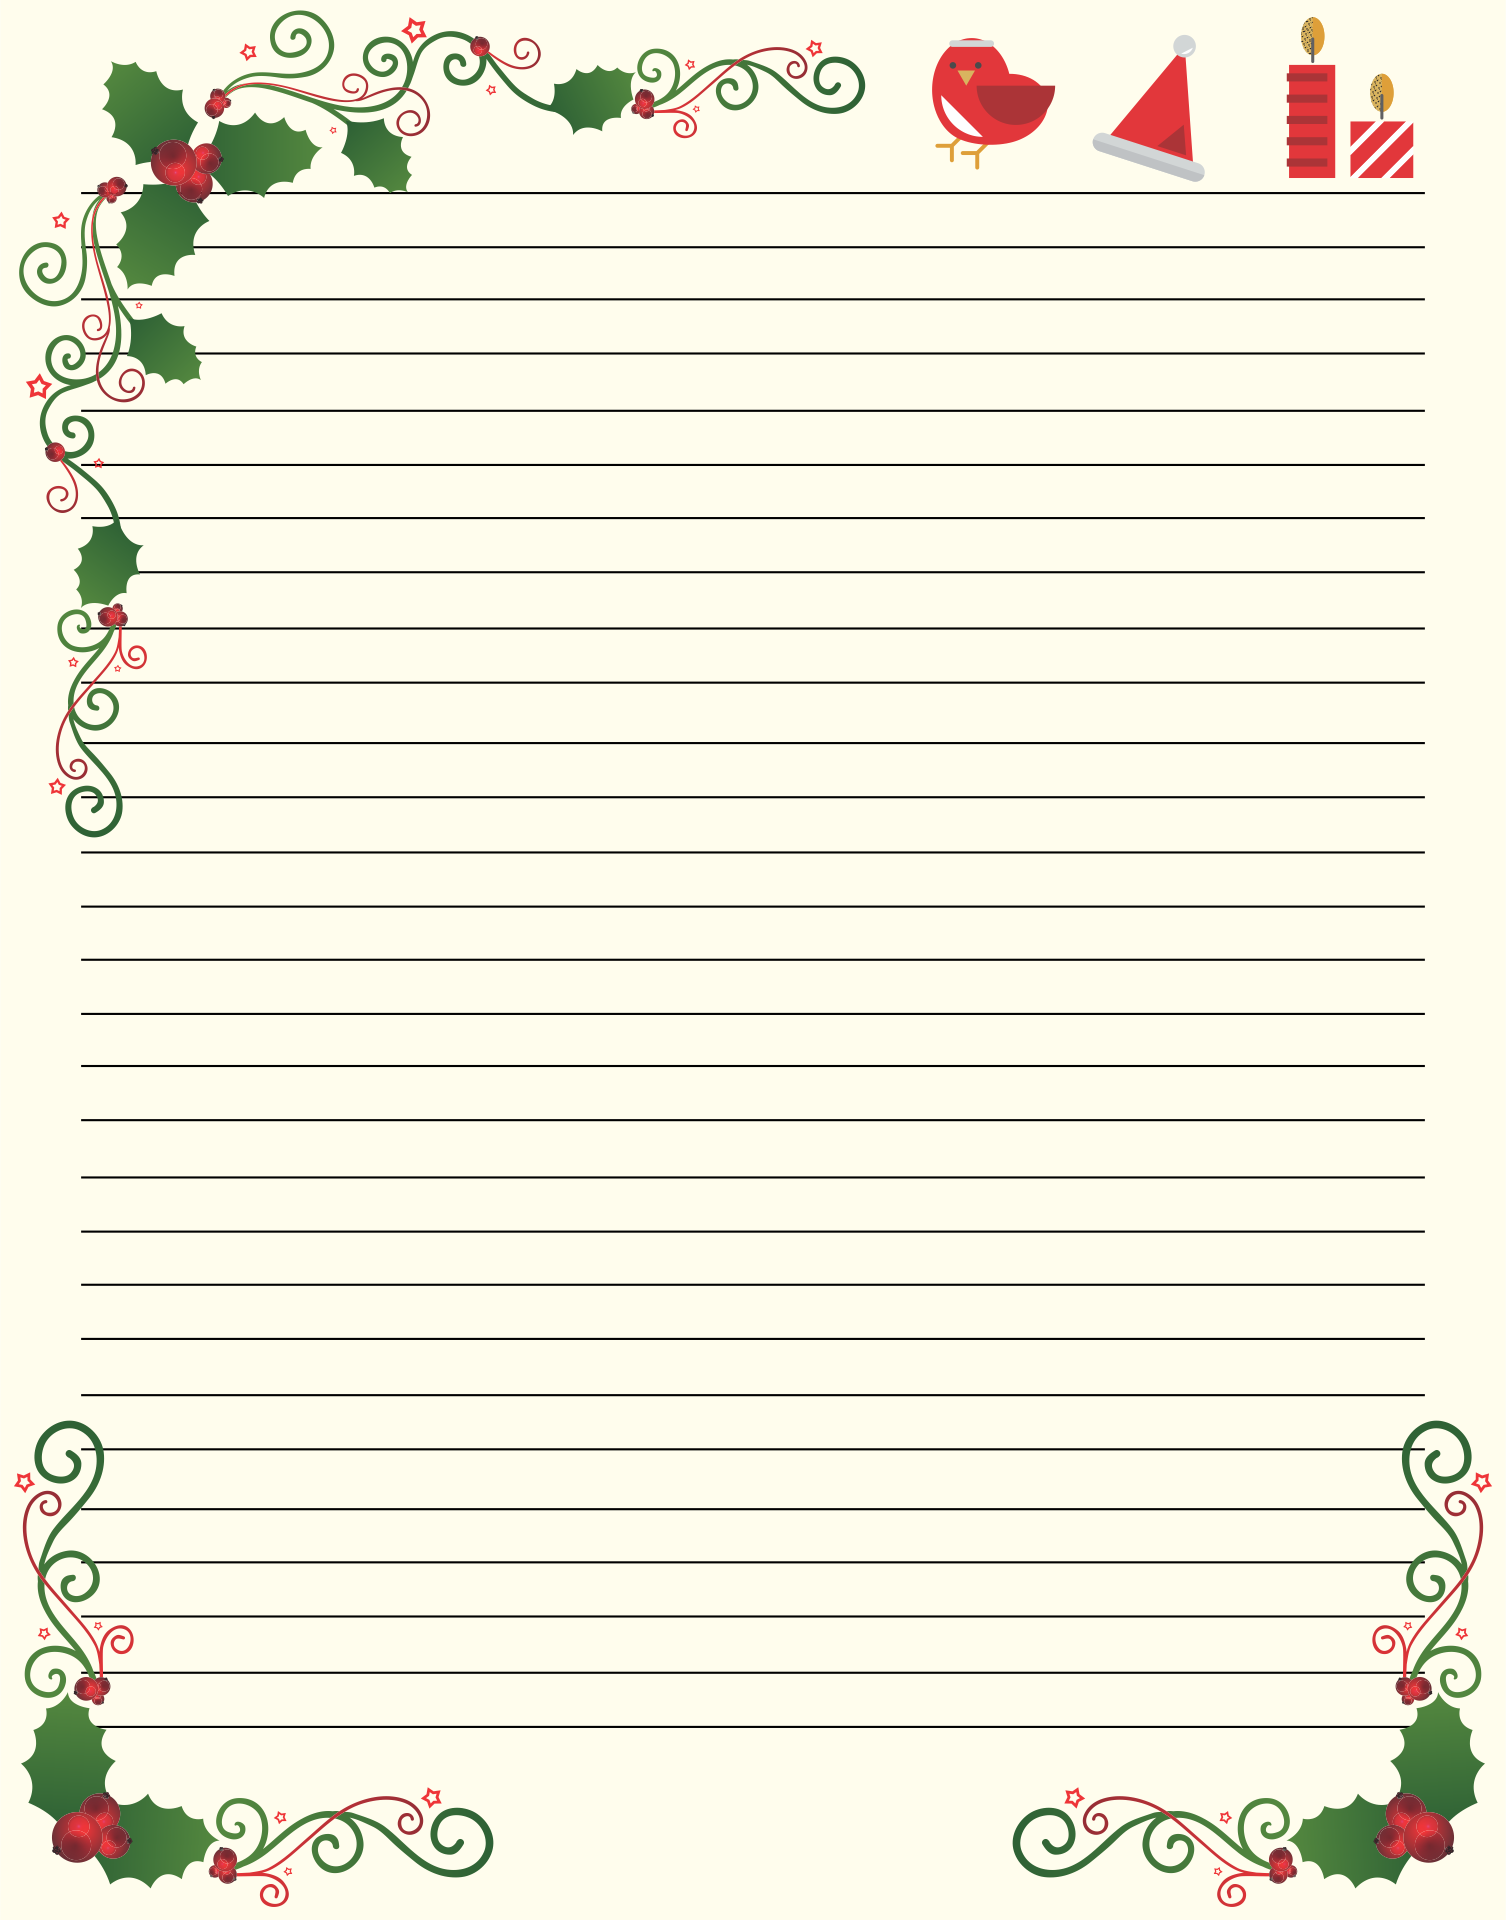 Printablee Post Free Printable Christmas Stationery Designs